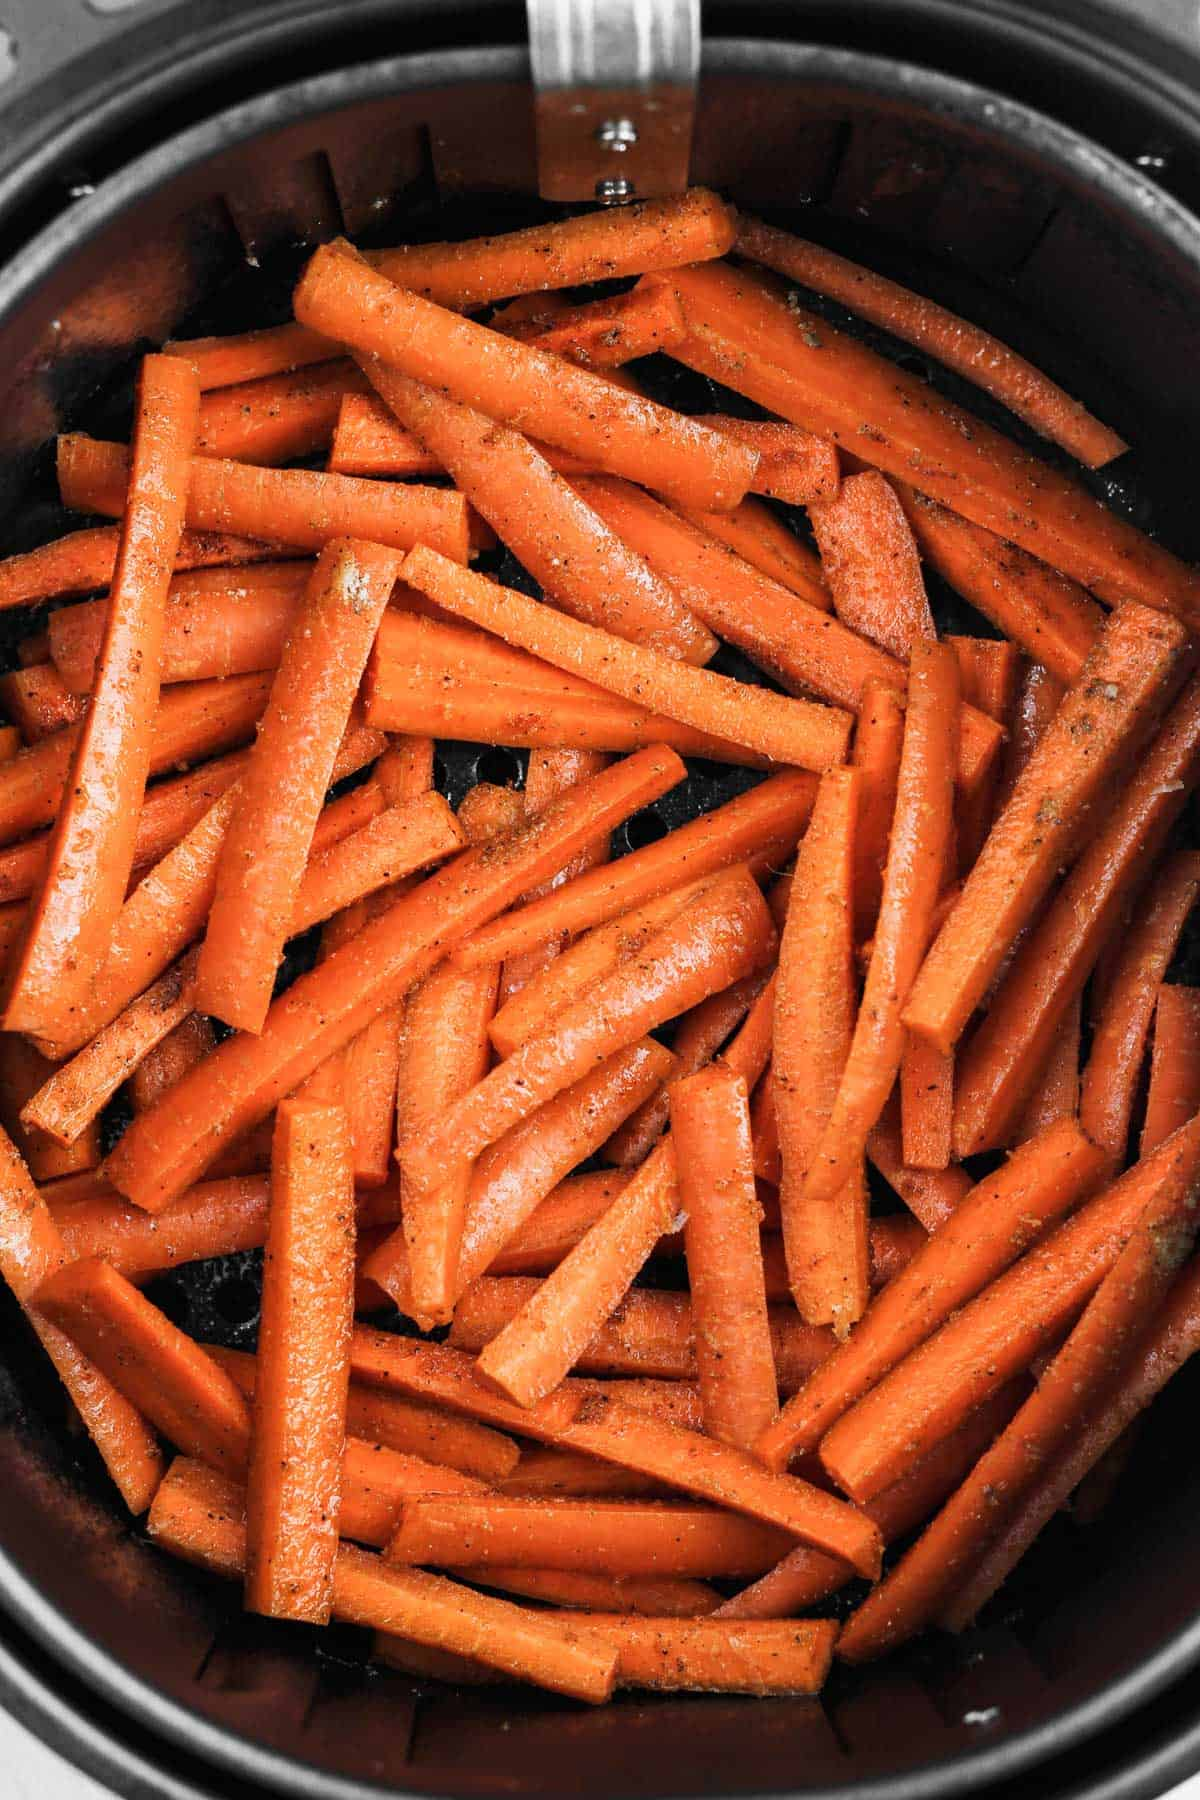 Cut and seasoned carrots in an air fryer basket.